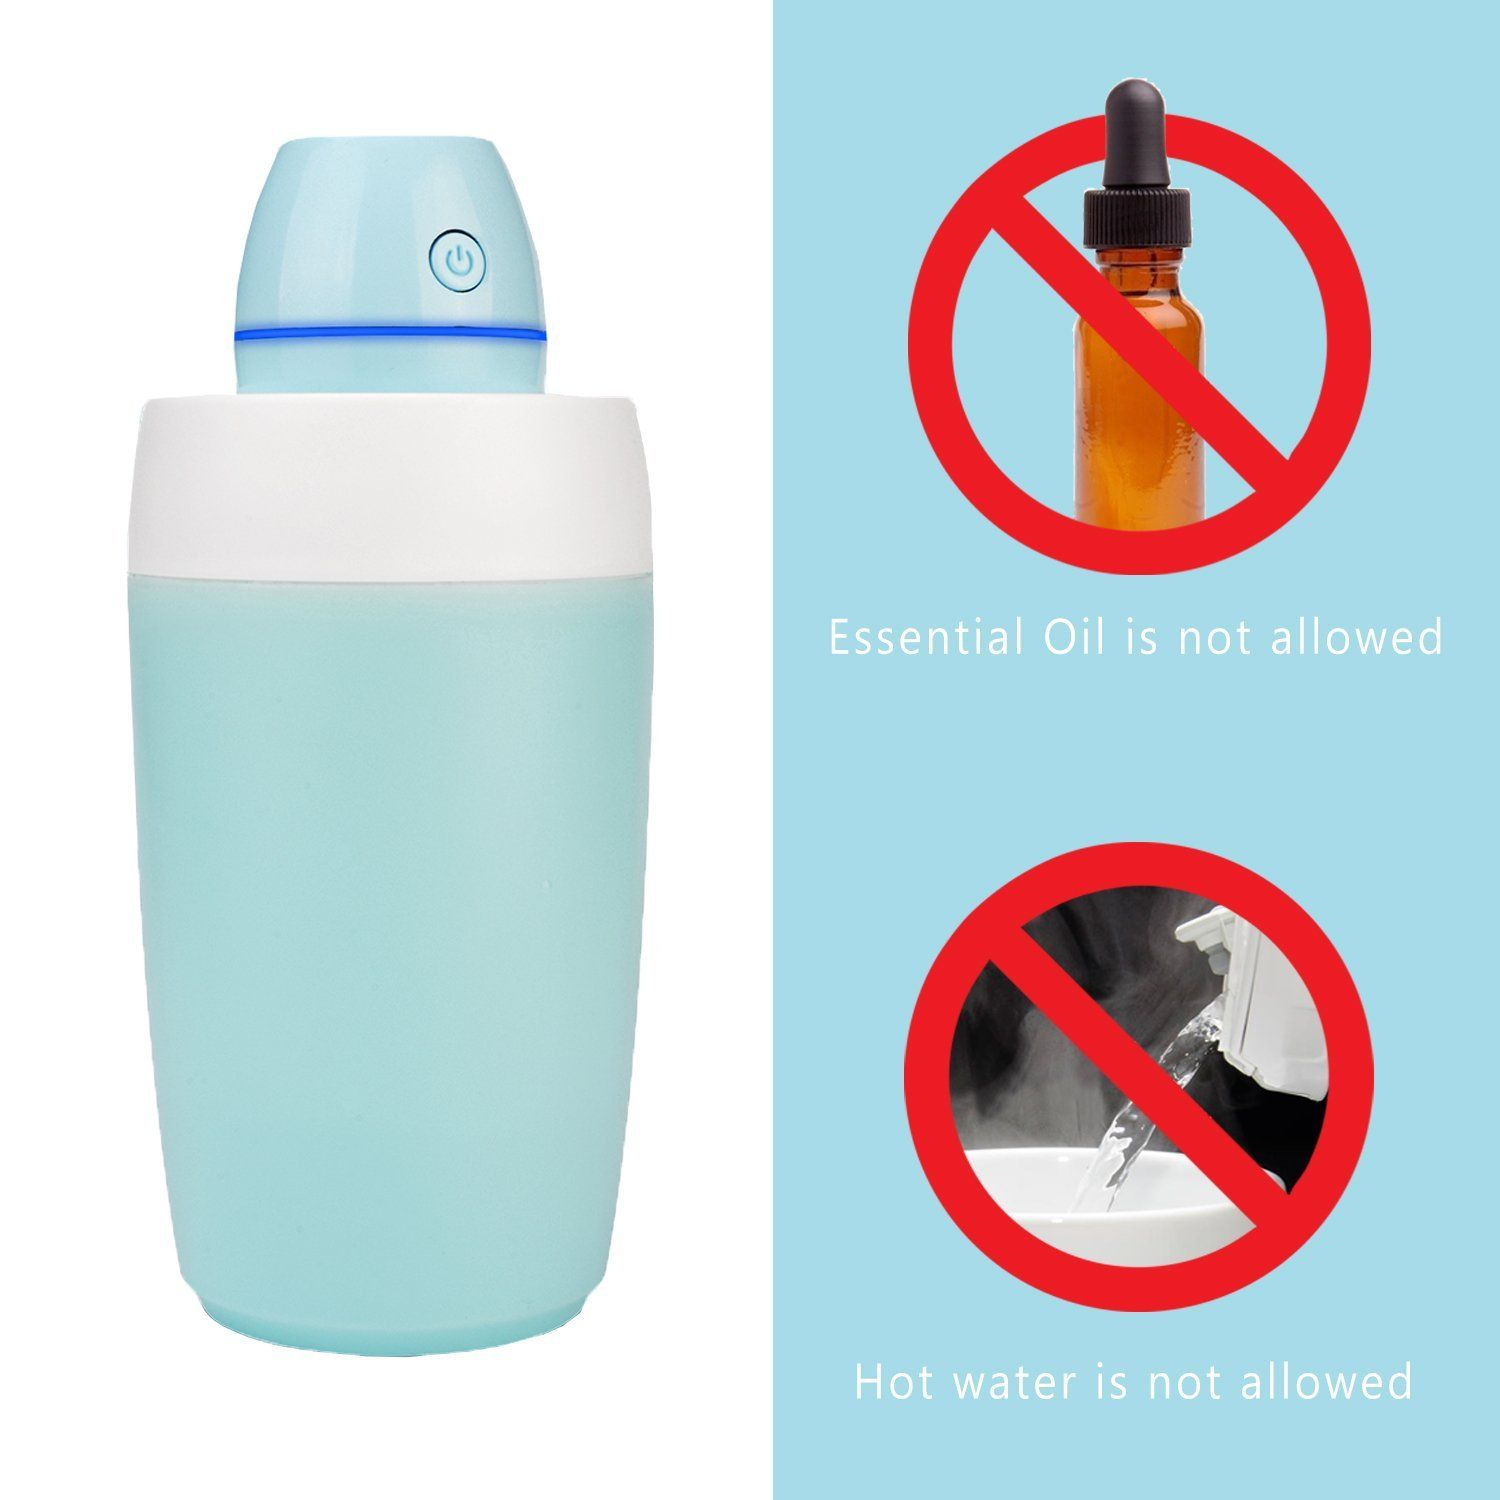 Starrybay Portable Mini Clean Cool Mist Humidifier Ultraquiet Desk Personal Air With Led Perfect For Travel Home Office Bedroom Or